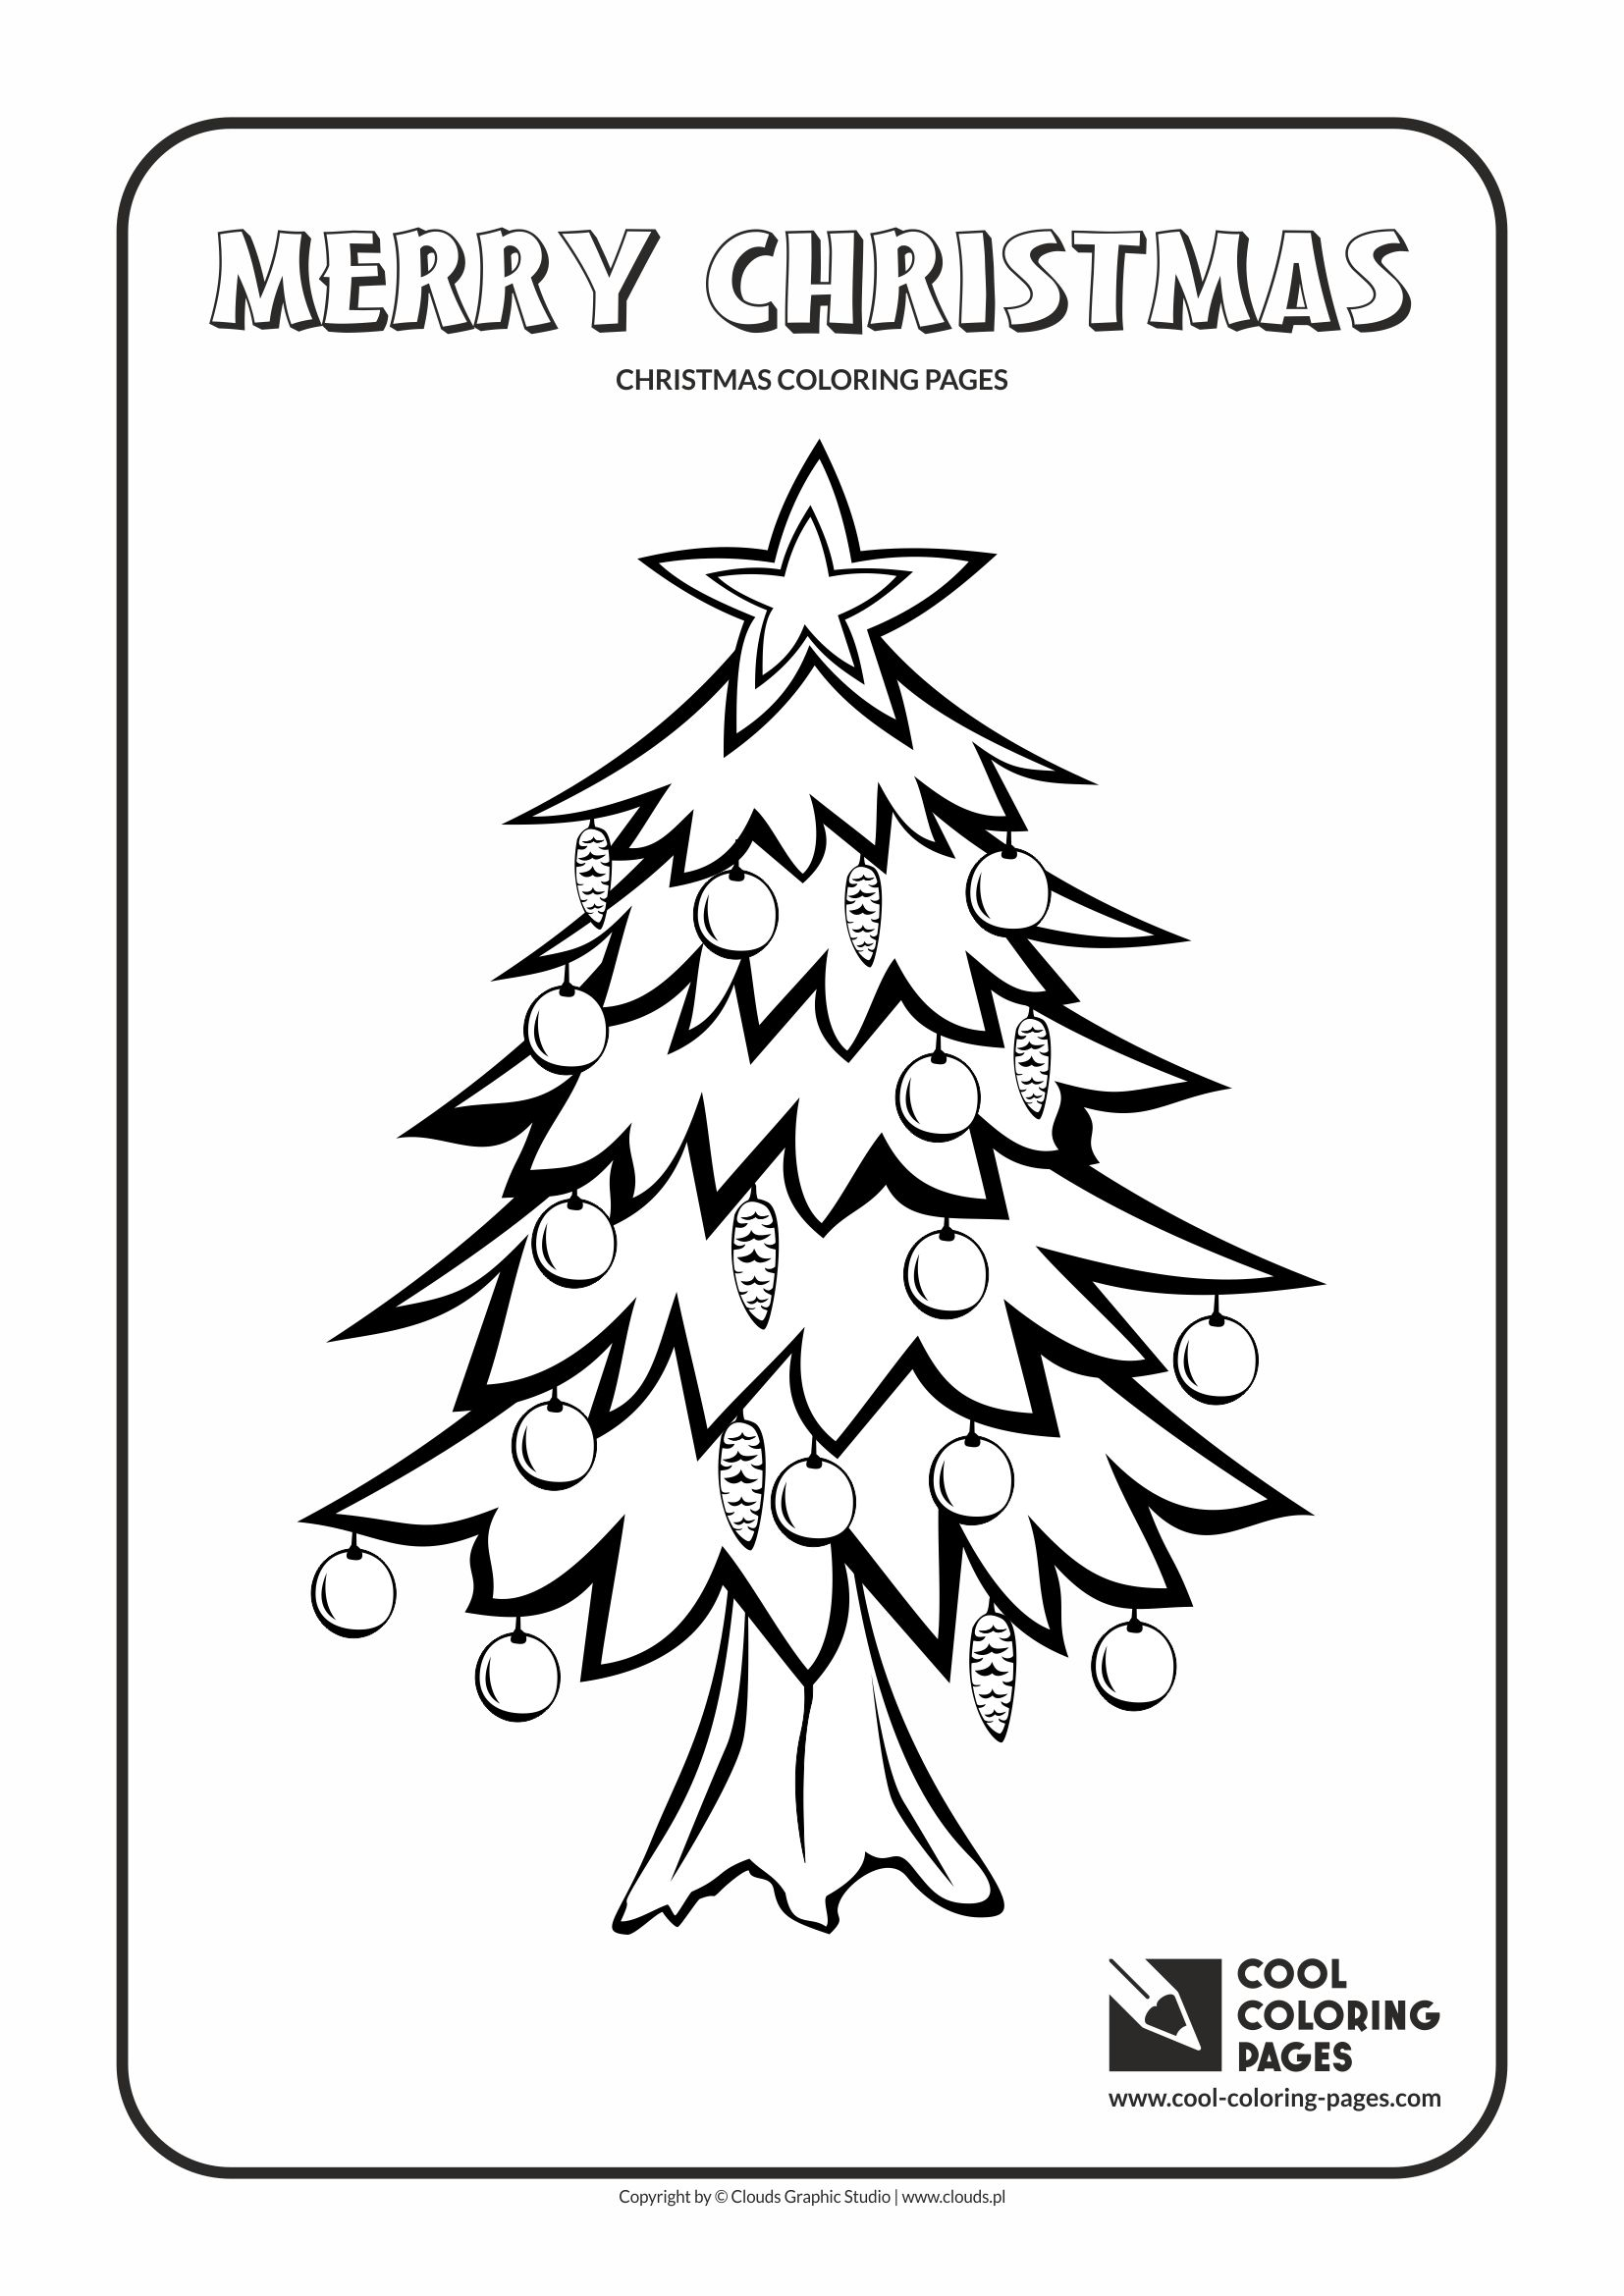 Cool Coloring Pages Christmas coloring